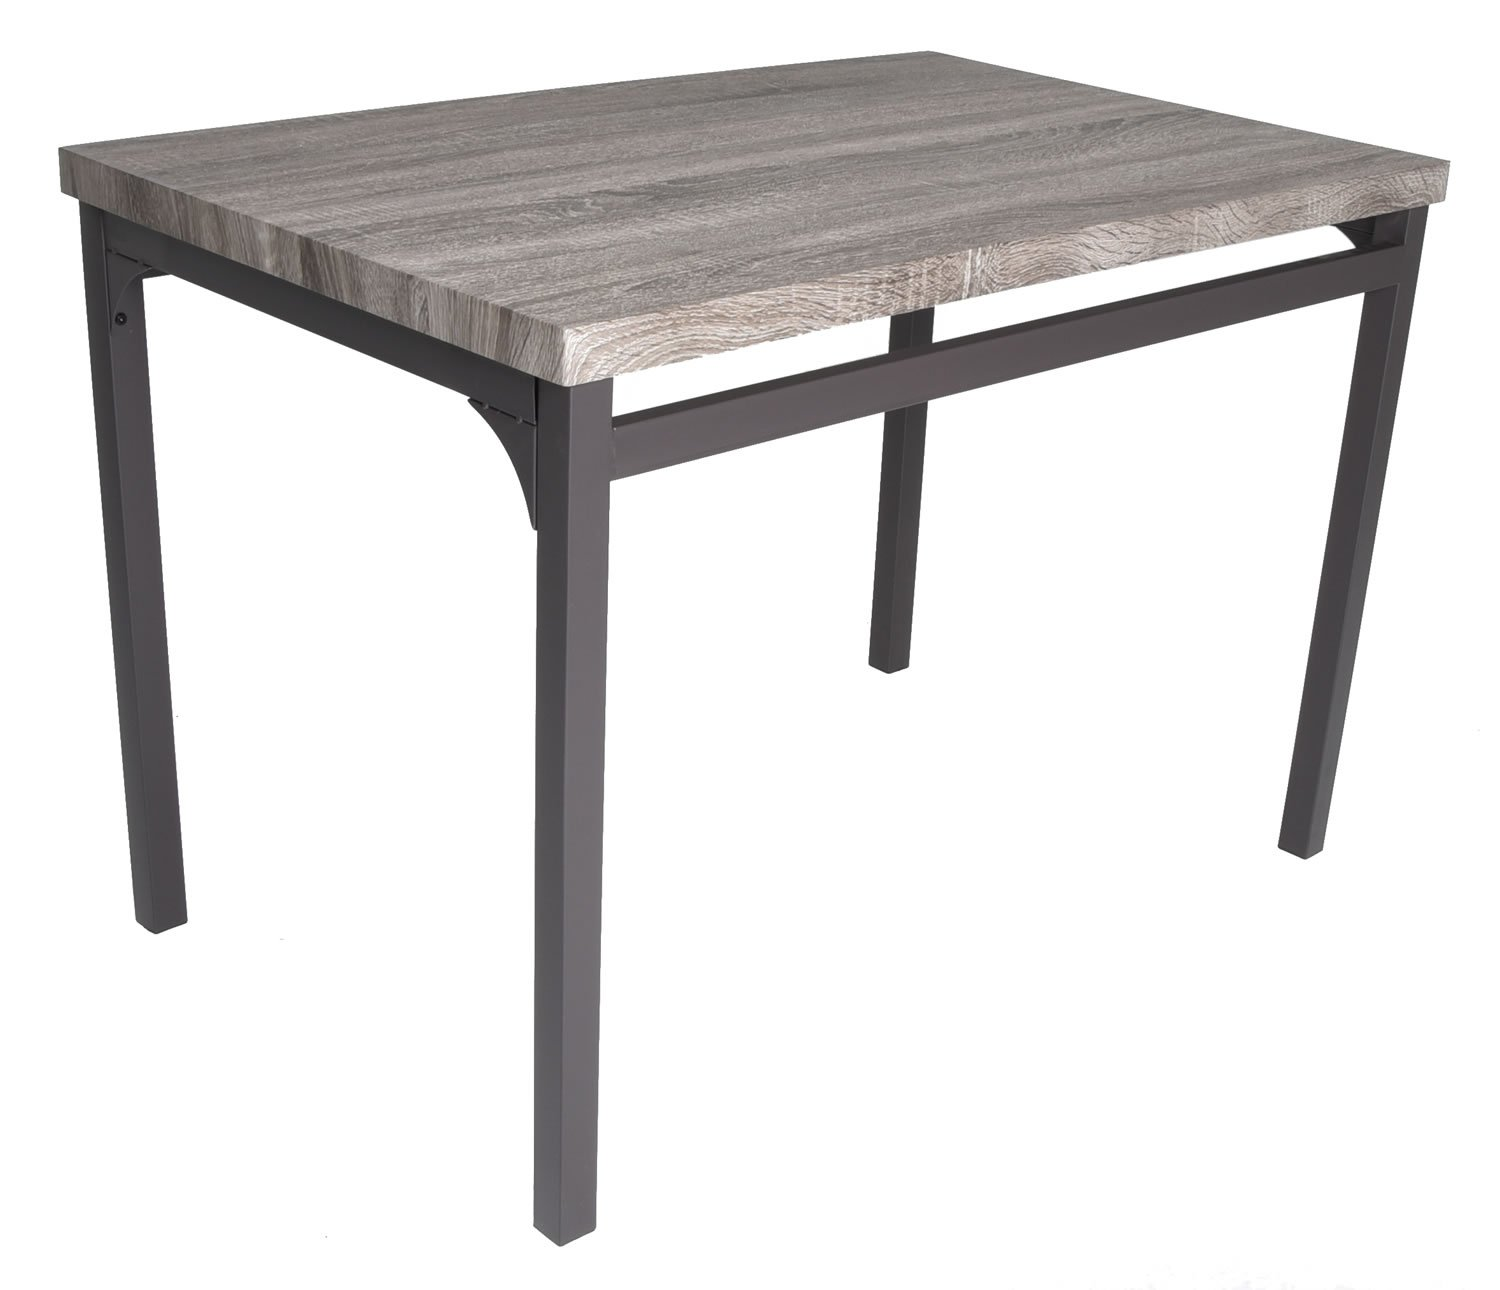 Zenvida 5 Piece Dining Set Rustic Grey Wooden Kitchen Table and 4 Chairs by Zenvida (Image #6)